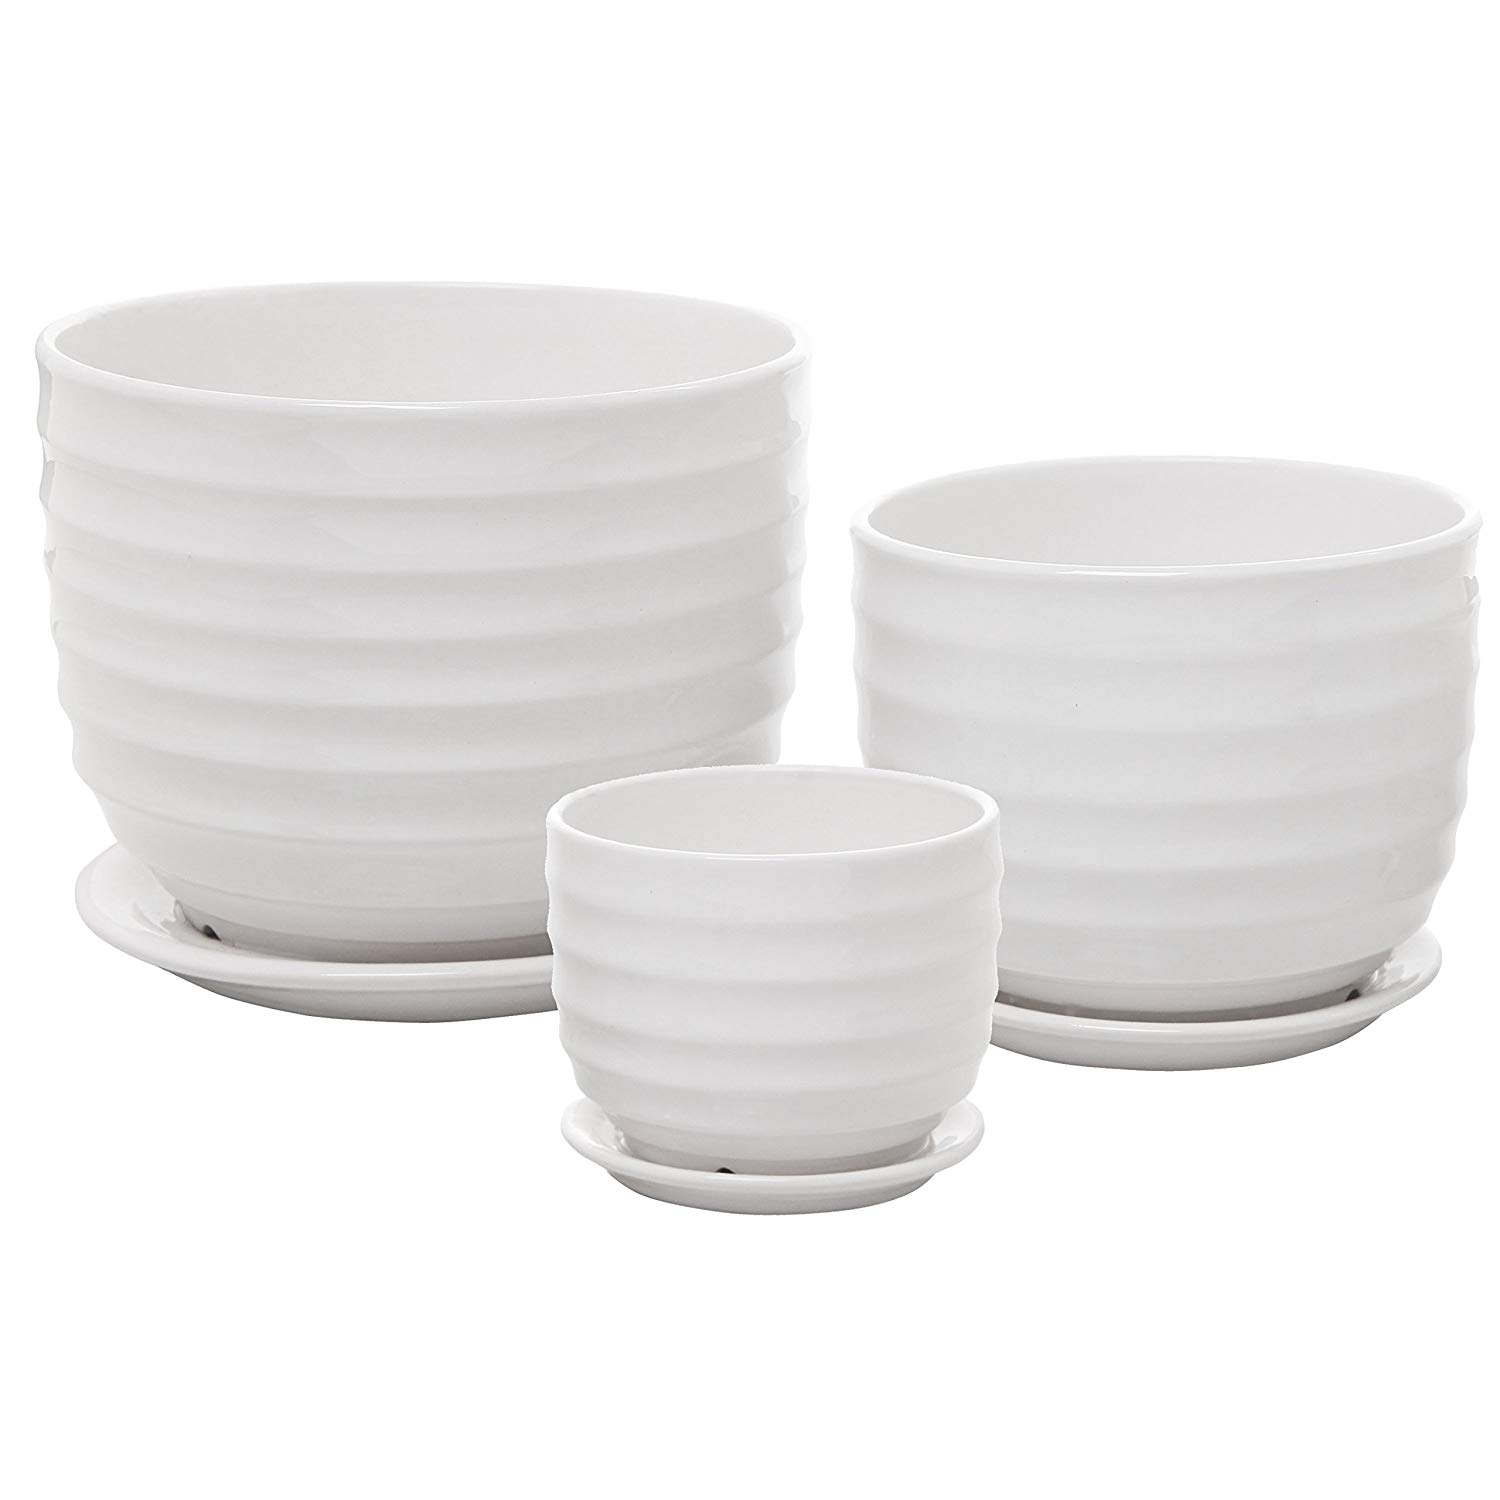 Ikea original unavailable; Inspiration: White Pots; set of 3